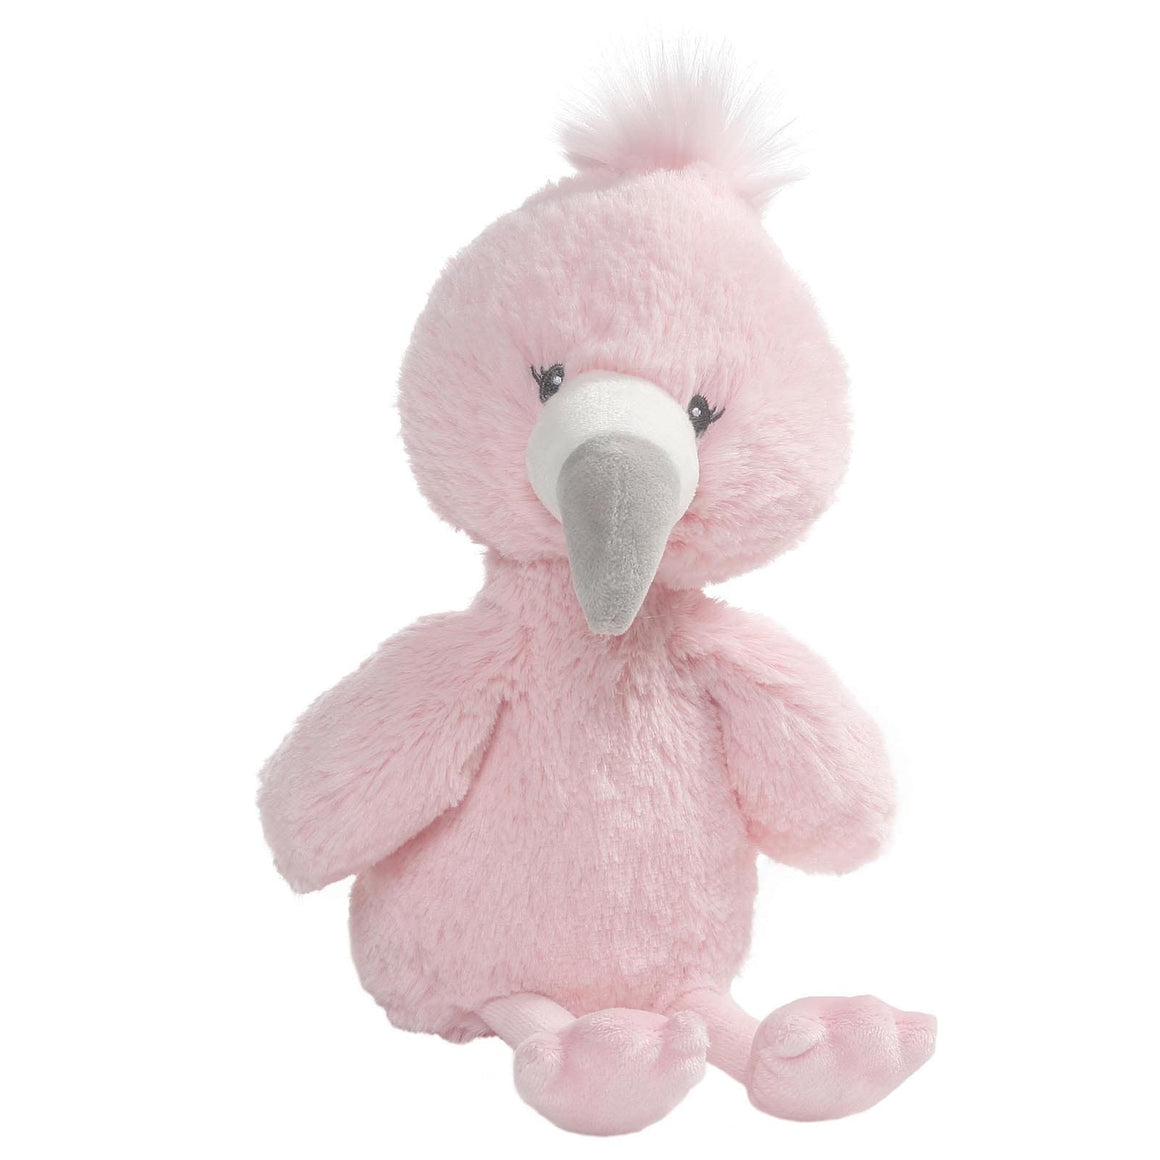 Baby GUND Toothpick Flamingo Soft Toy